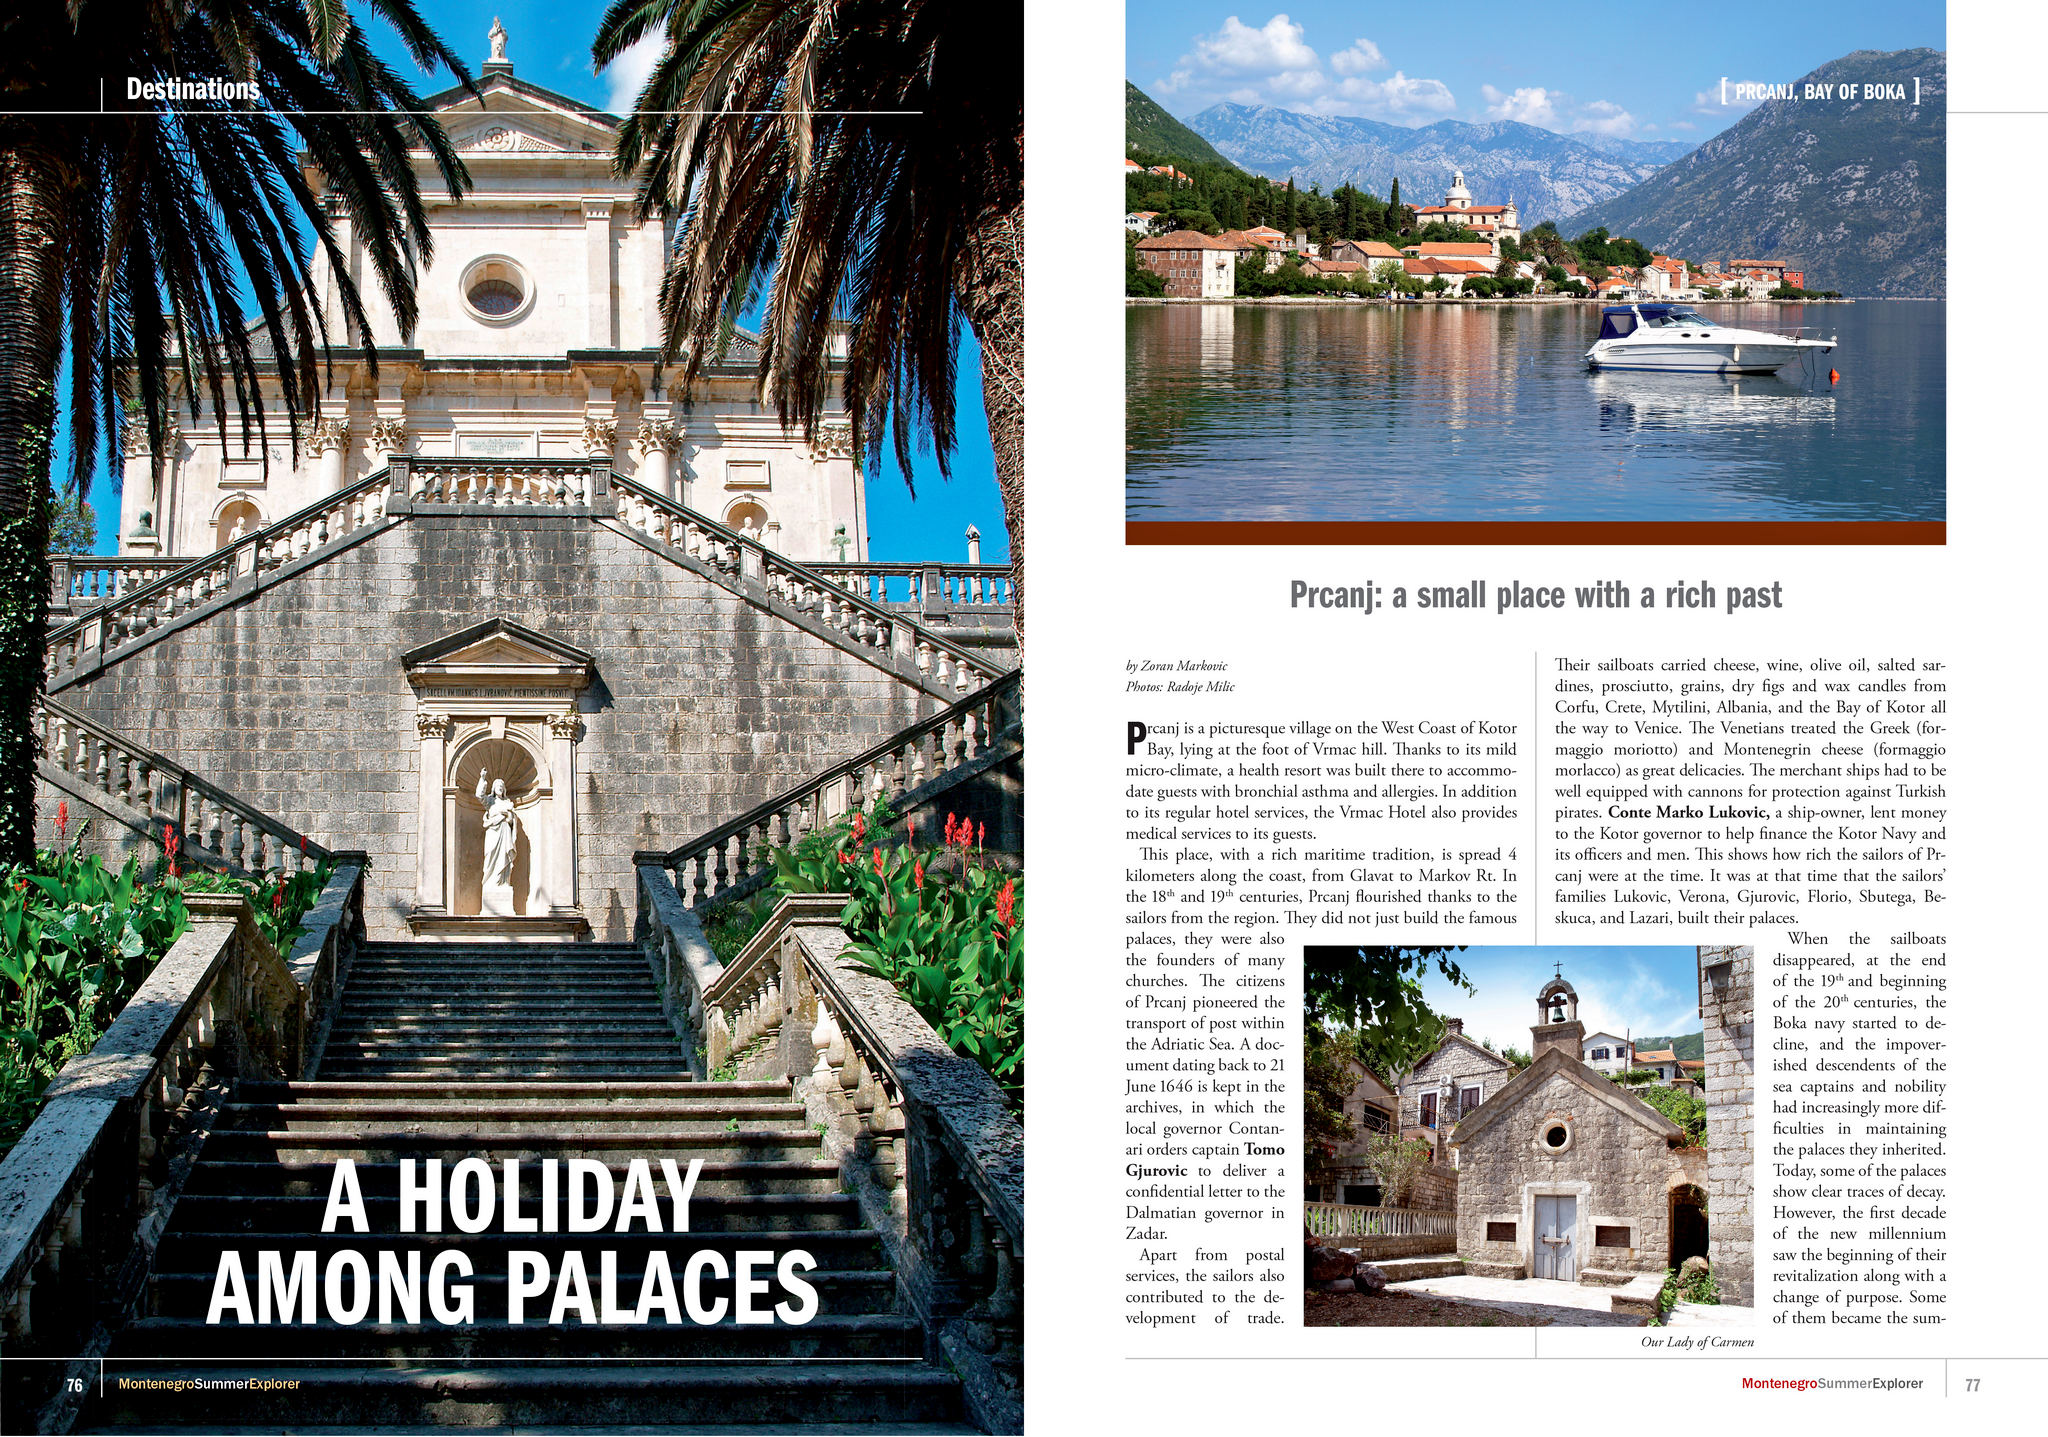 A Holiday among palaces